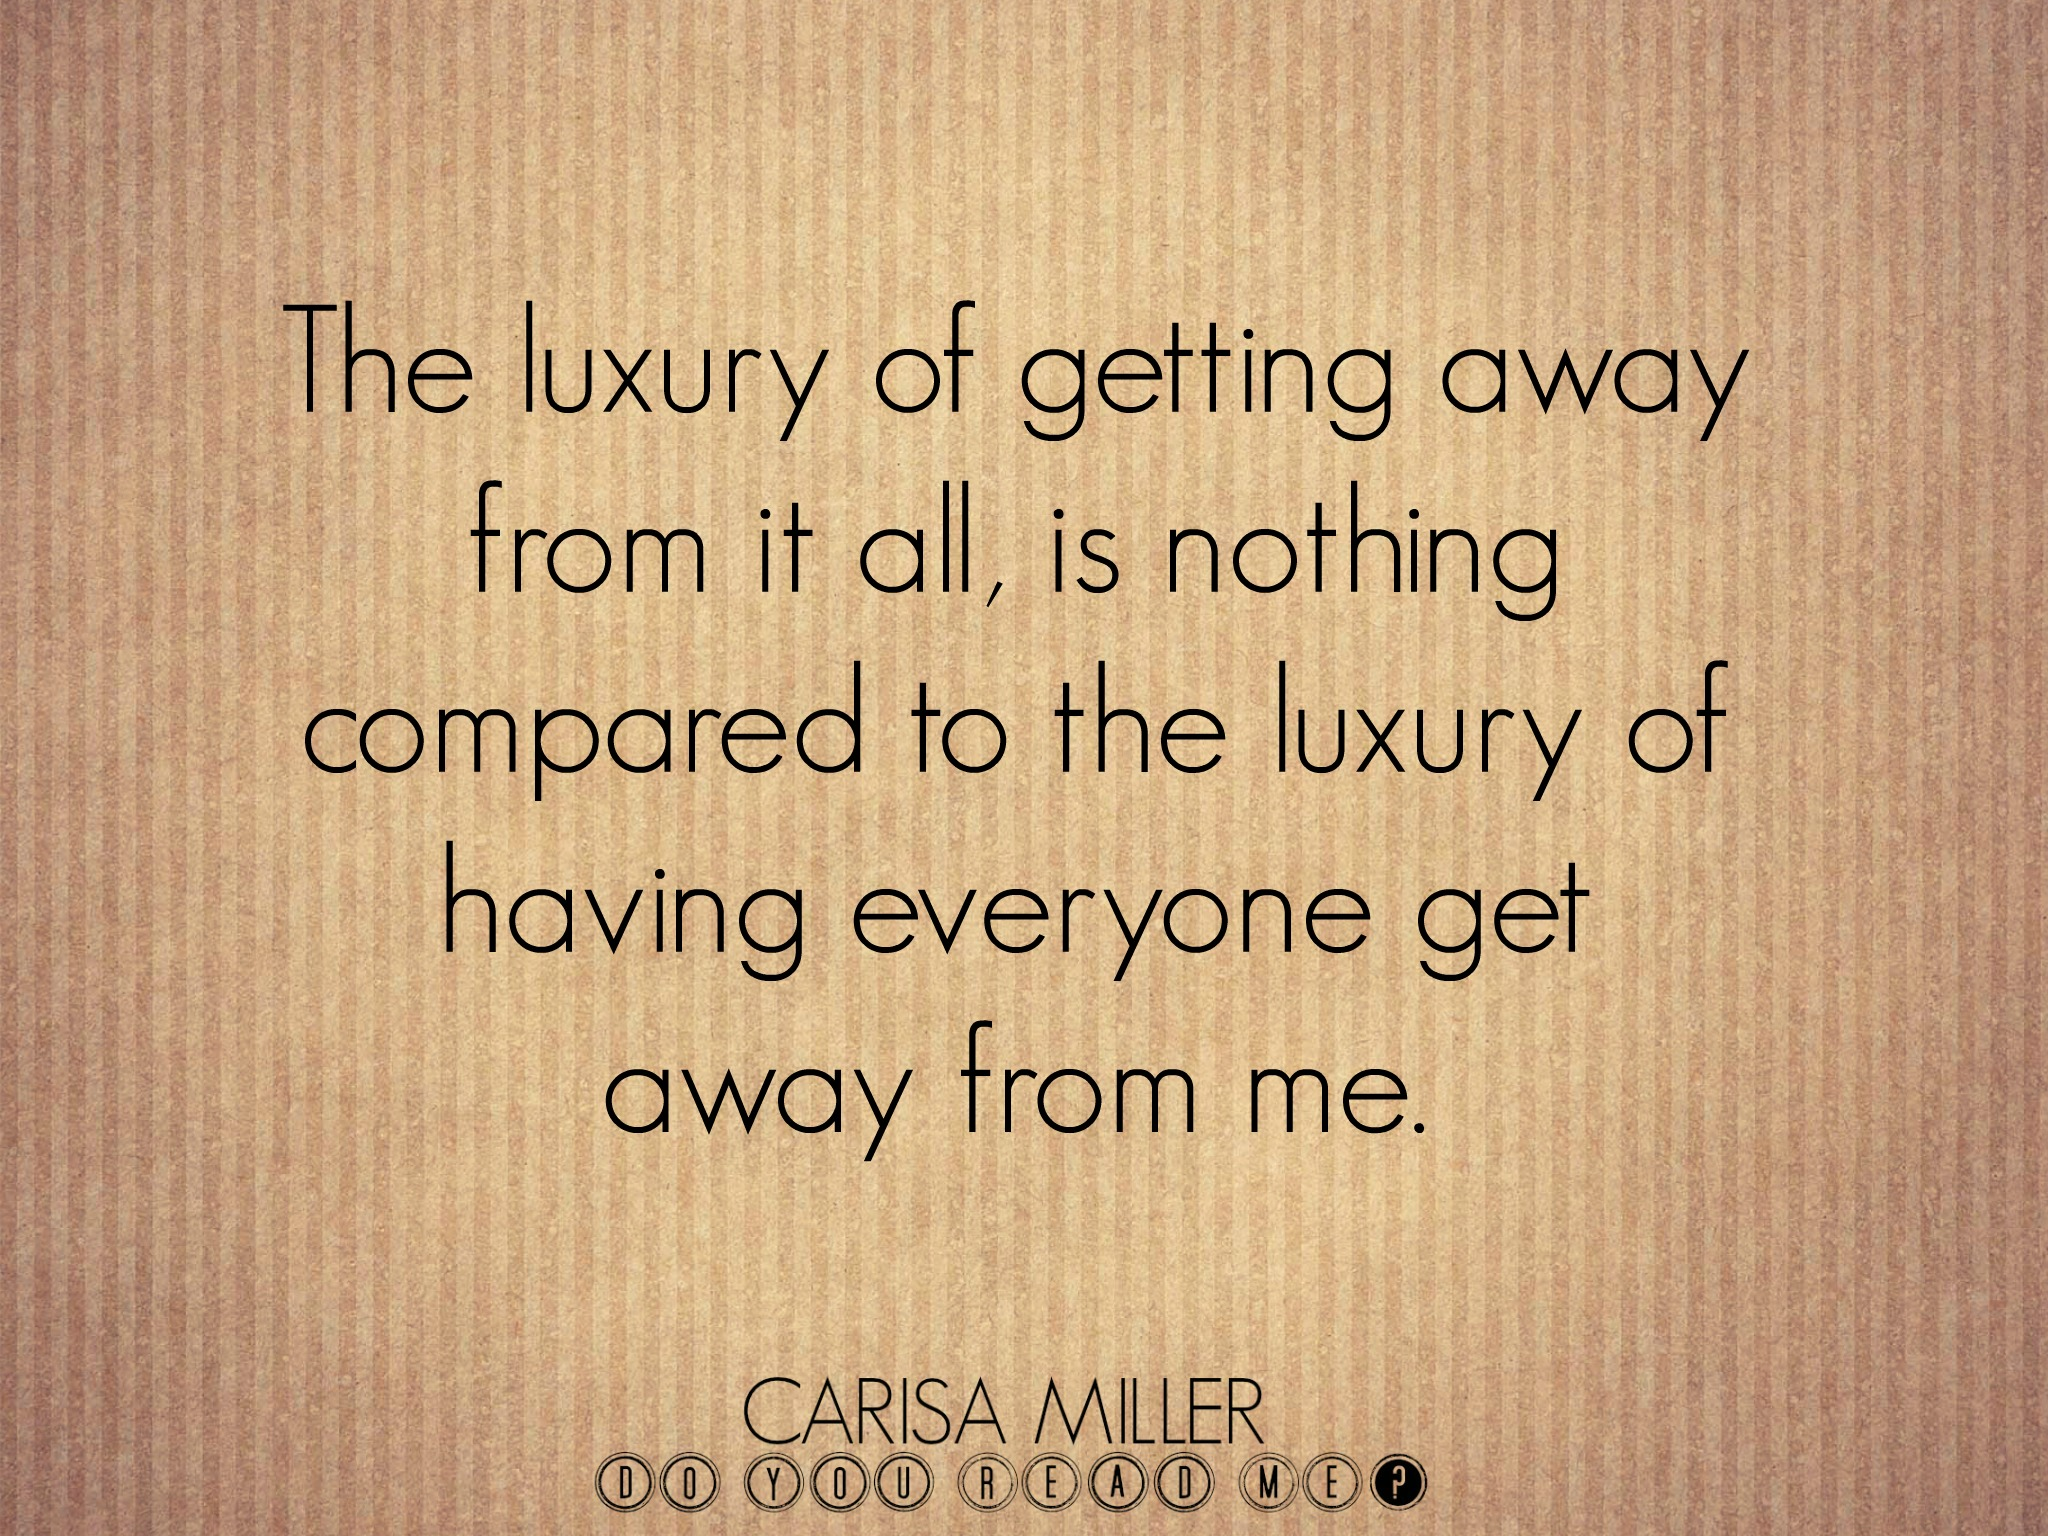 Family Goaway by Carisa Miller